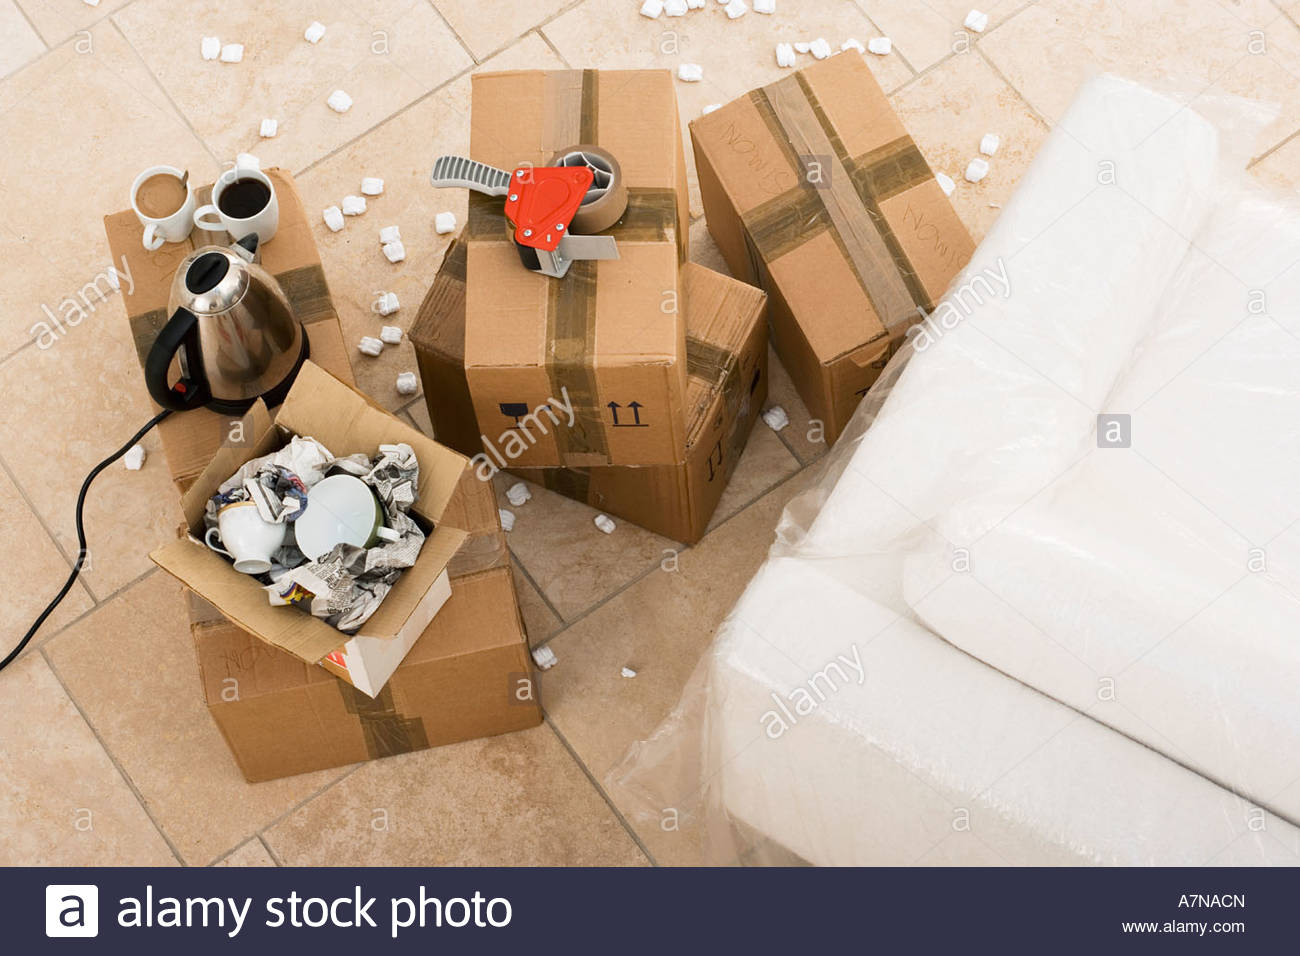 Duct tape boxes crockery kettle and cups beside sofa wrapped in plastic sheet overhead view Stock Photo